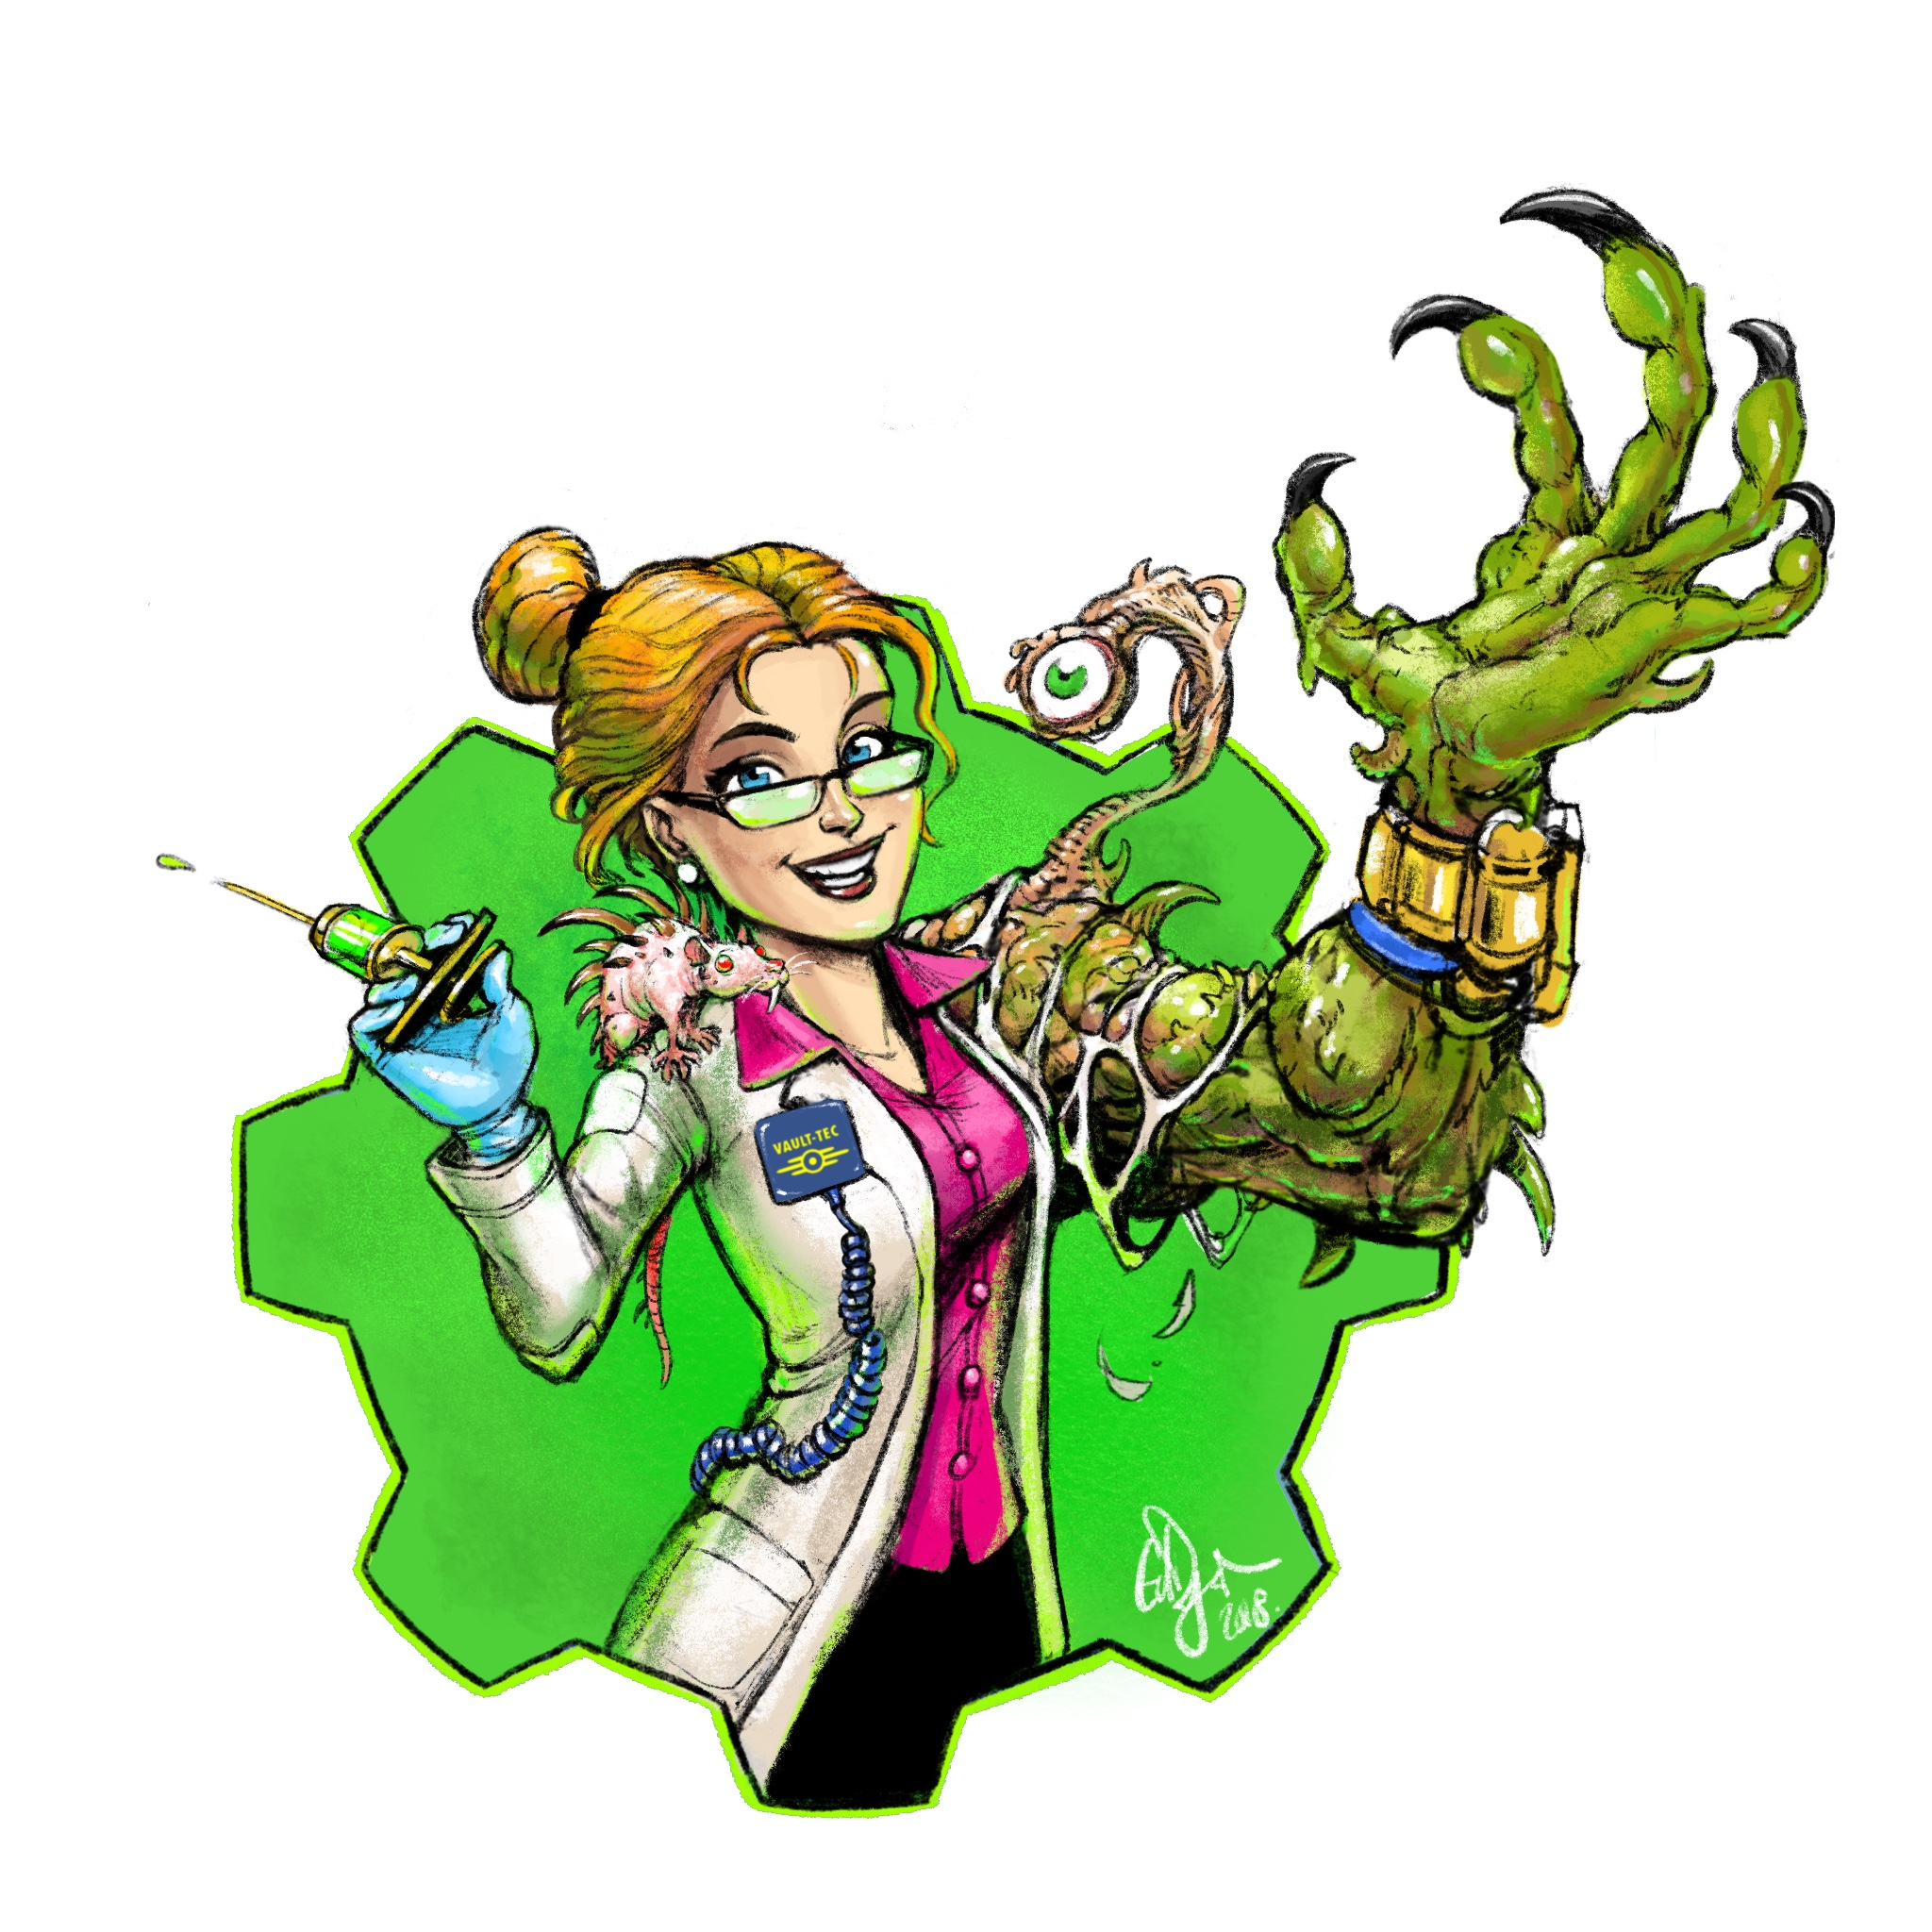 Dr. Eve